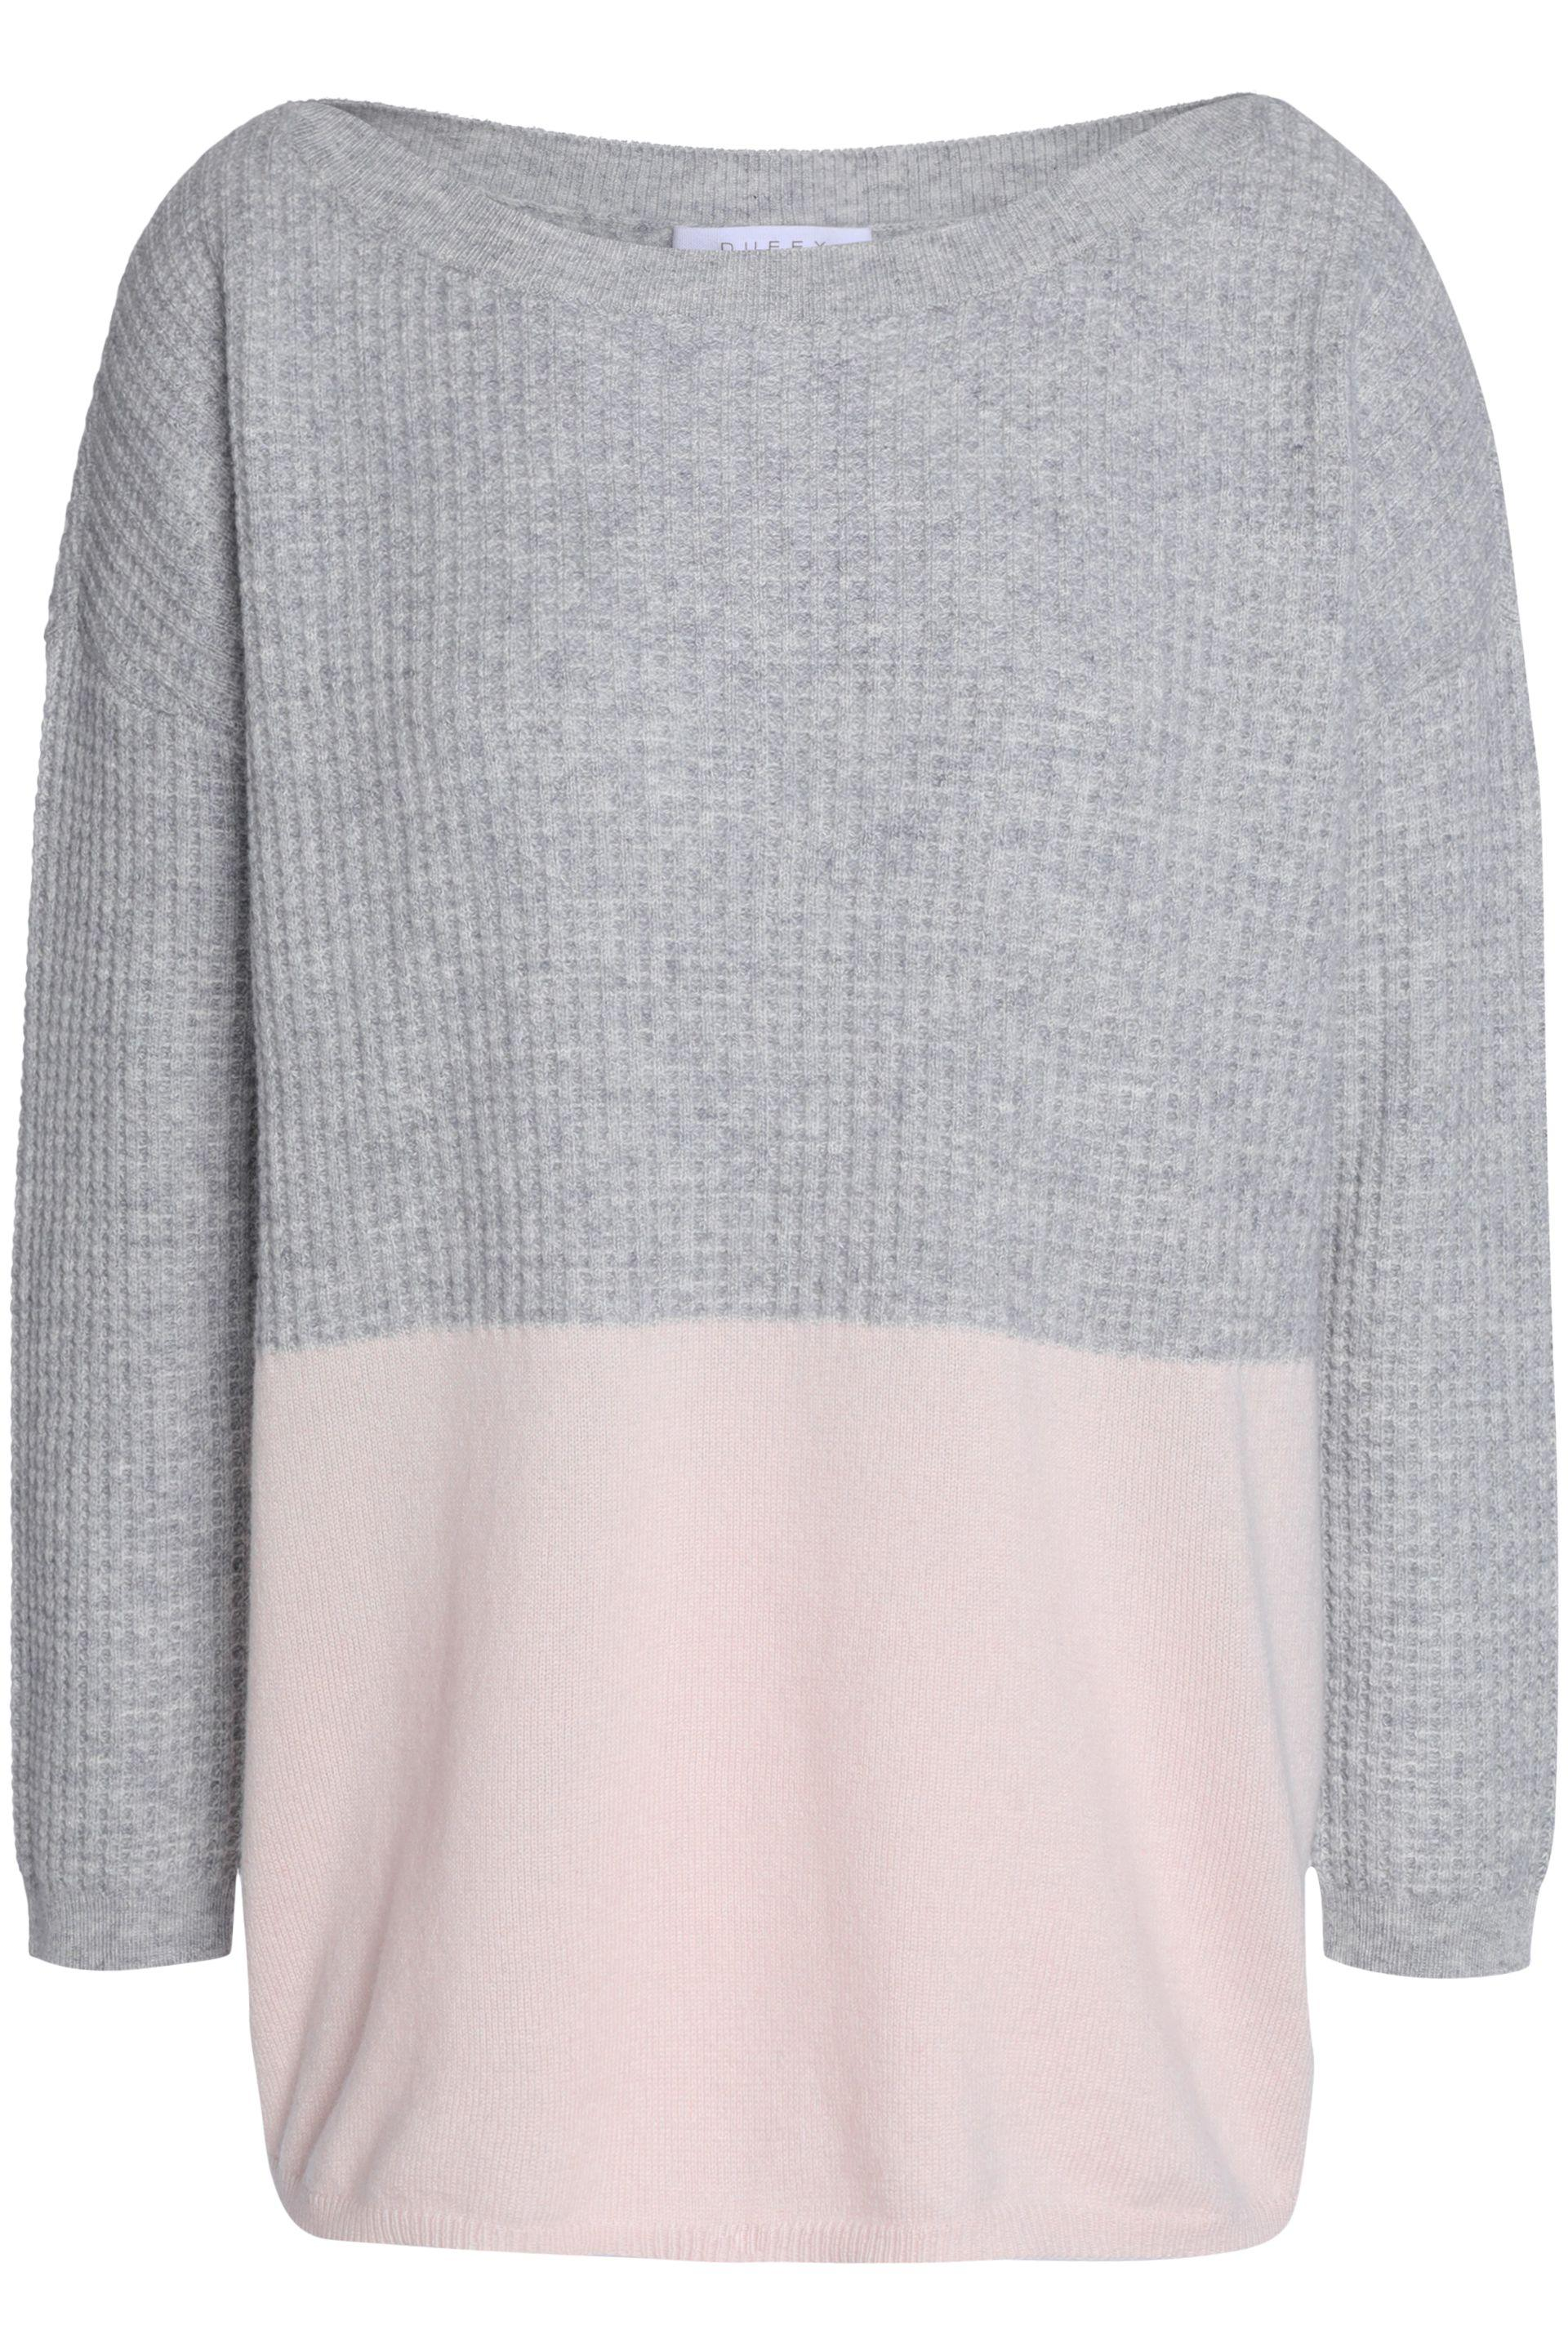 663836bcc9af7d Duffy Woman Waffle Knit-paneled Two-tone Cashmere Sweater Gray in ...